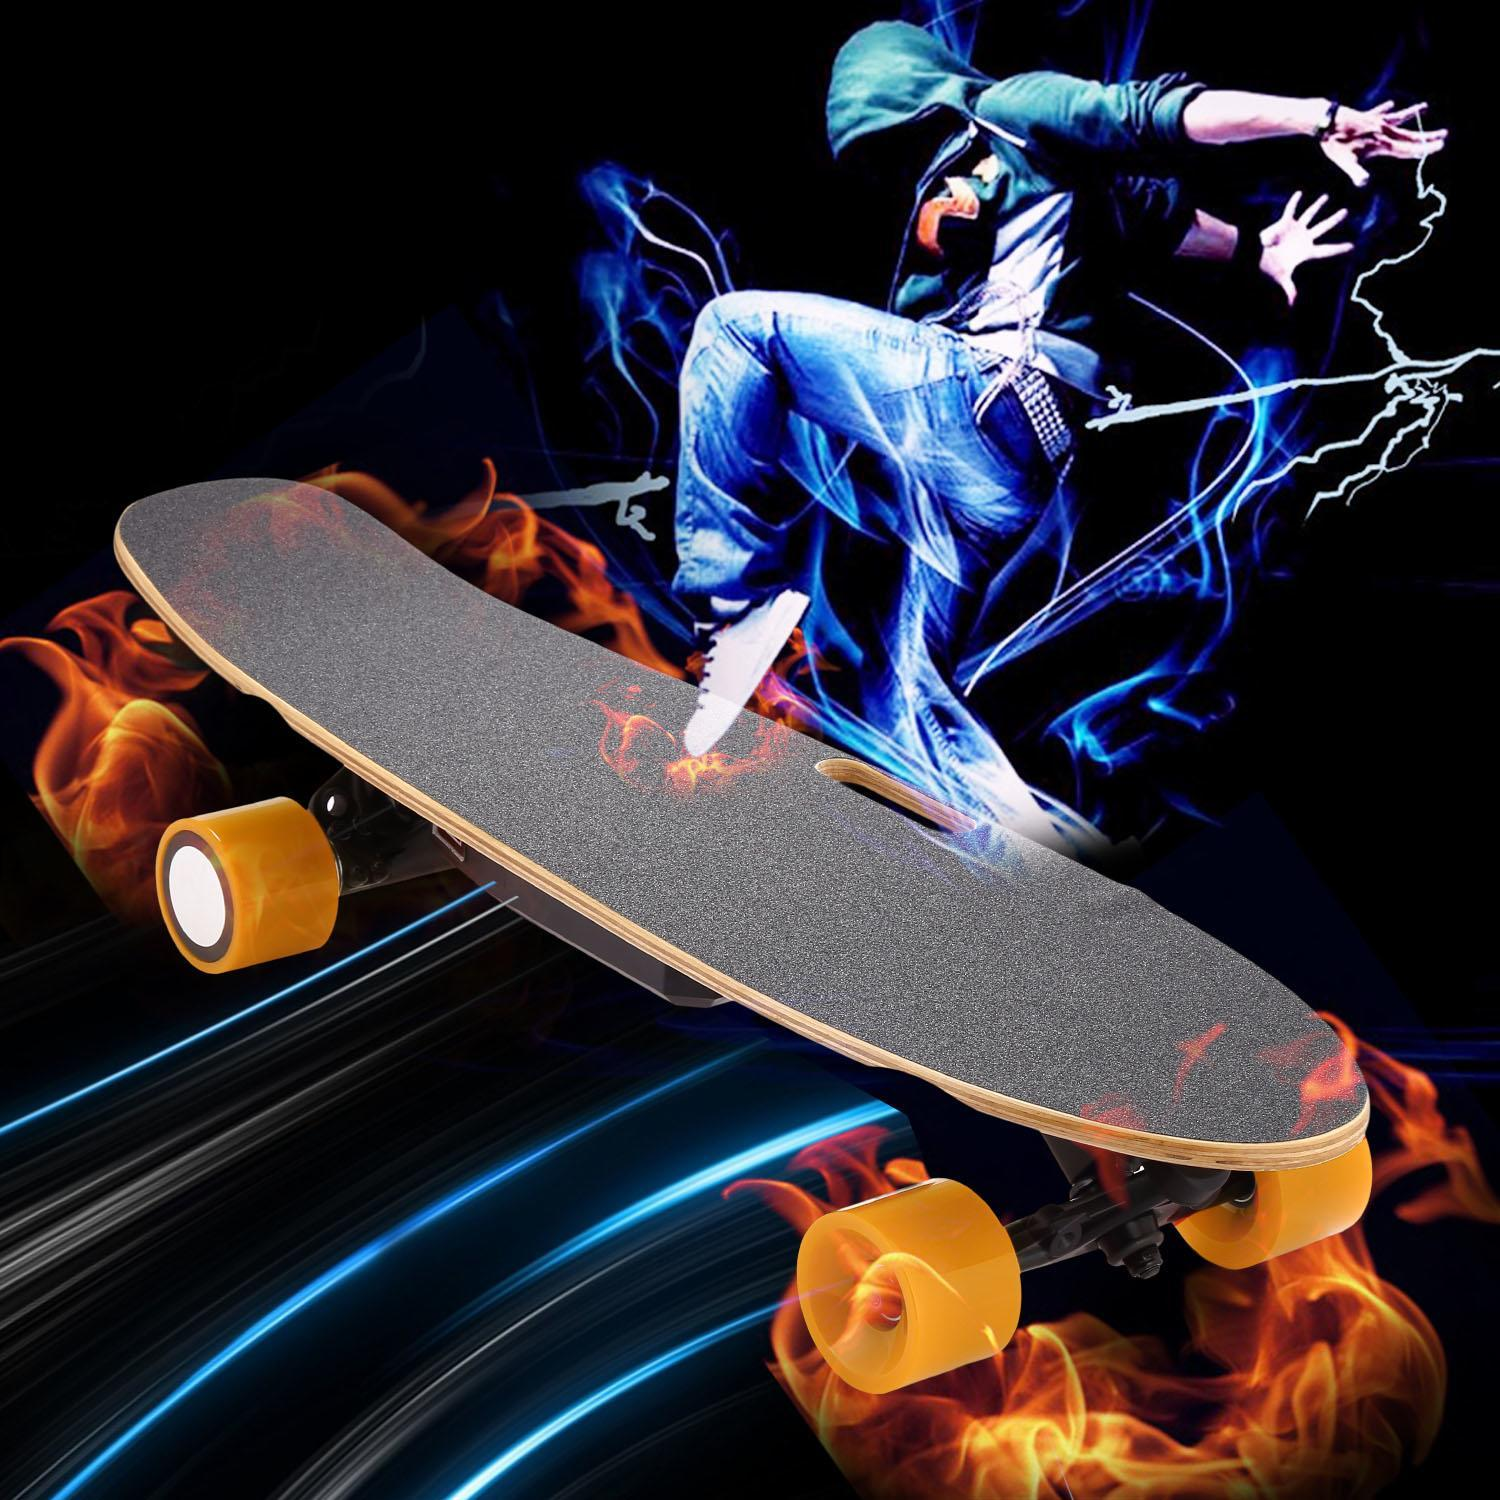 BLACK FRIDAY SALES !!!SPHP The worth buy Electric Skateboard Longboard with Wireless Bluetooth Remote Control for Boys... by